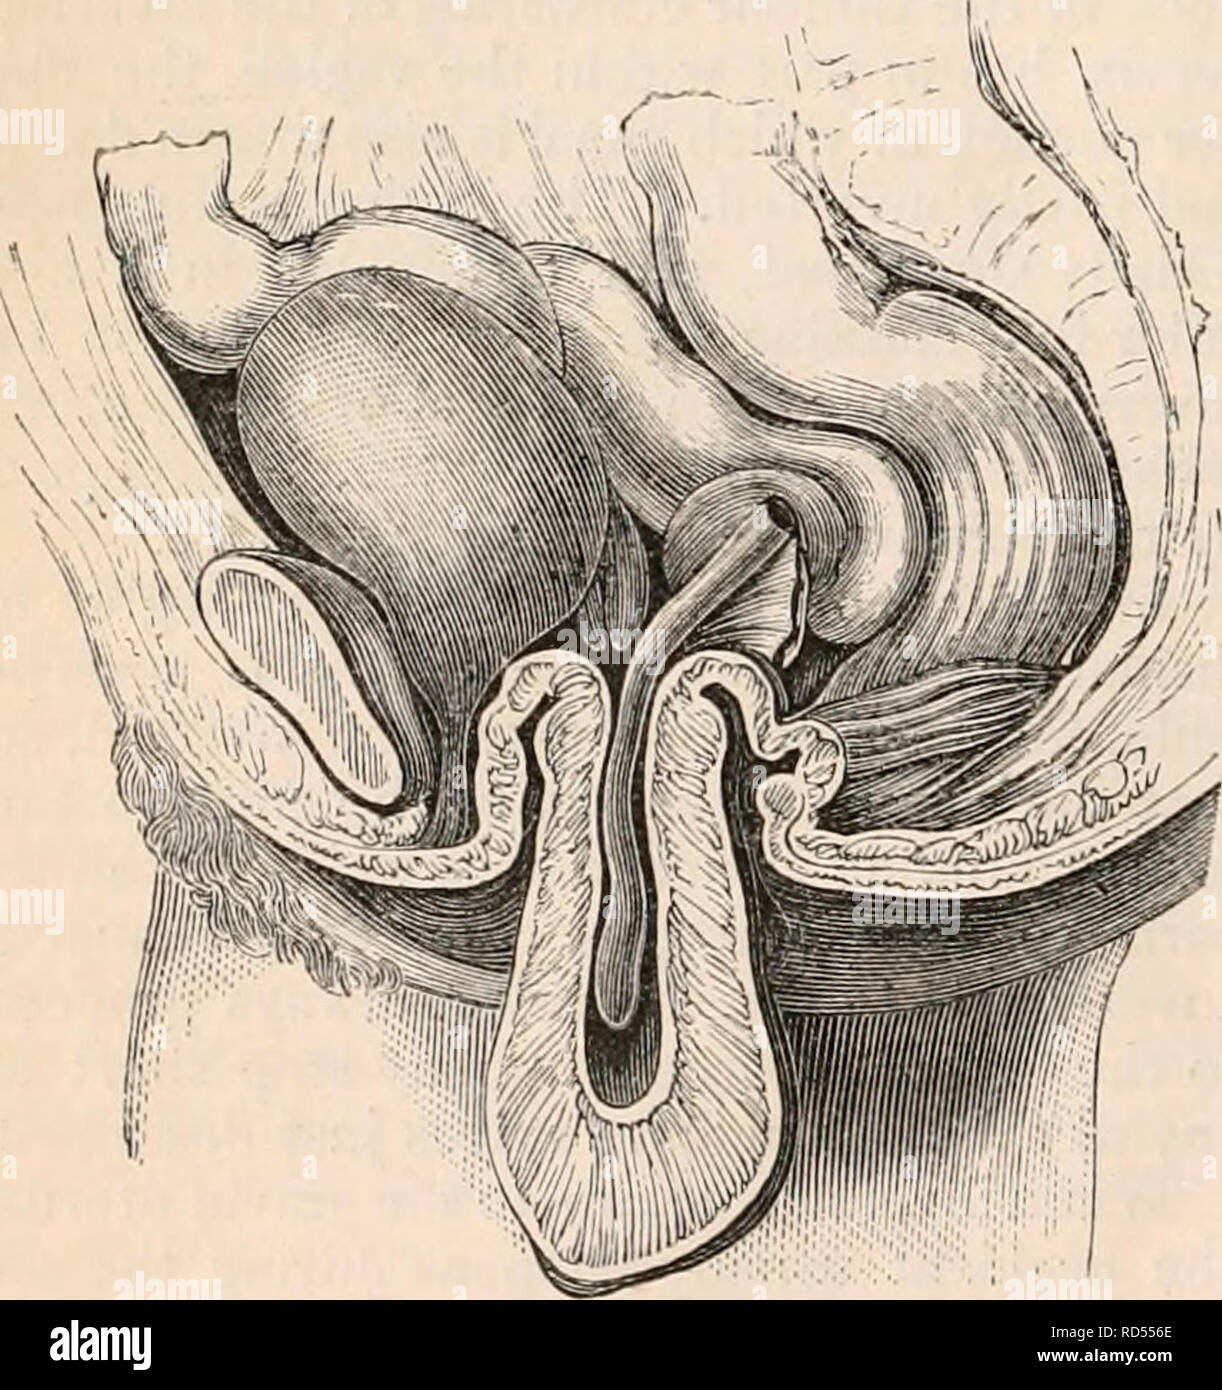 . The cyclopædia of anatomy and physiology. Anatomy; Physiology; Zoology. Incomplete inversion of the uterus. (After J. G. Forbes.) The fundus is beginning to protrude through the os uteri, dragging after it the Fallopian tubes, which are drawn into the hollow formed by the inverted organ. dilatation of the uterine cavity by a tumour the size of a flattened apricot, which was ex- pelled at the moment when the uterus came Fig. 471.. Complete inversion of the uterus. (Diagram.) down completely inverted,—the violent ac- tion of the abdominal muscles and diaphragm probably here producing or aiding - Stock Image